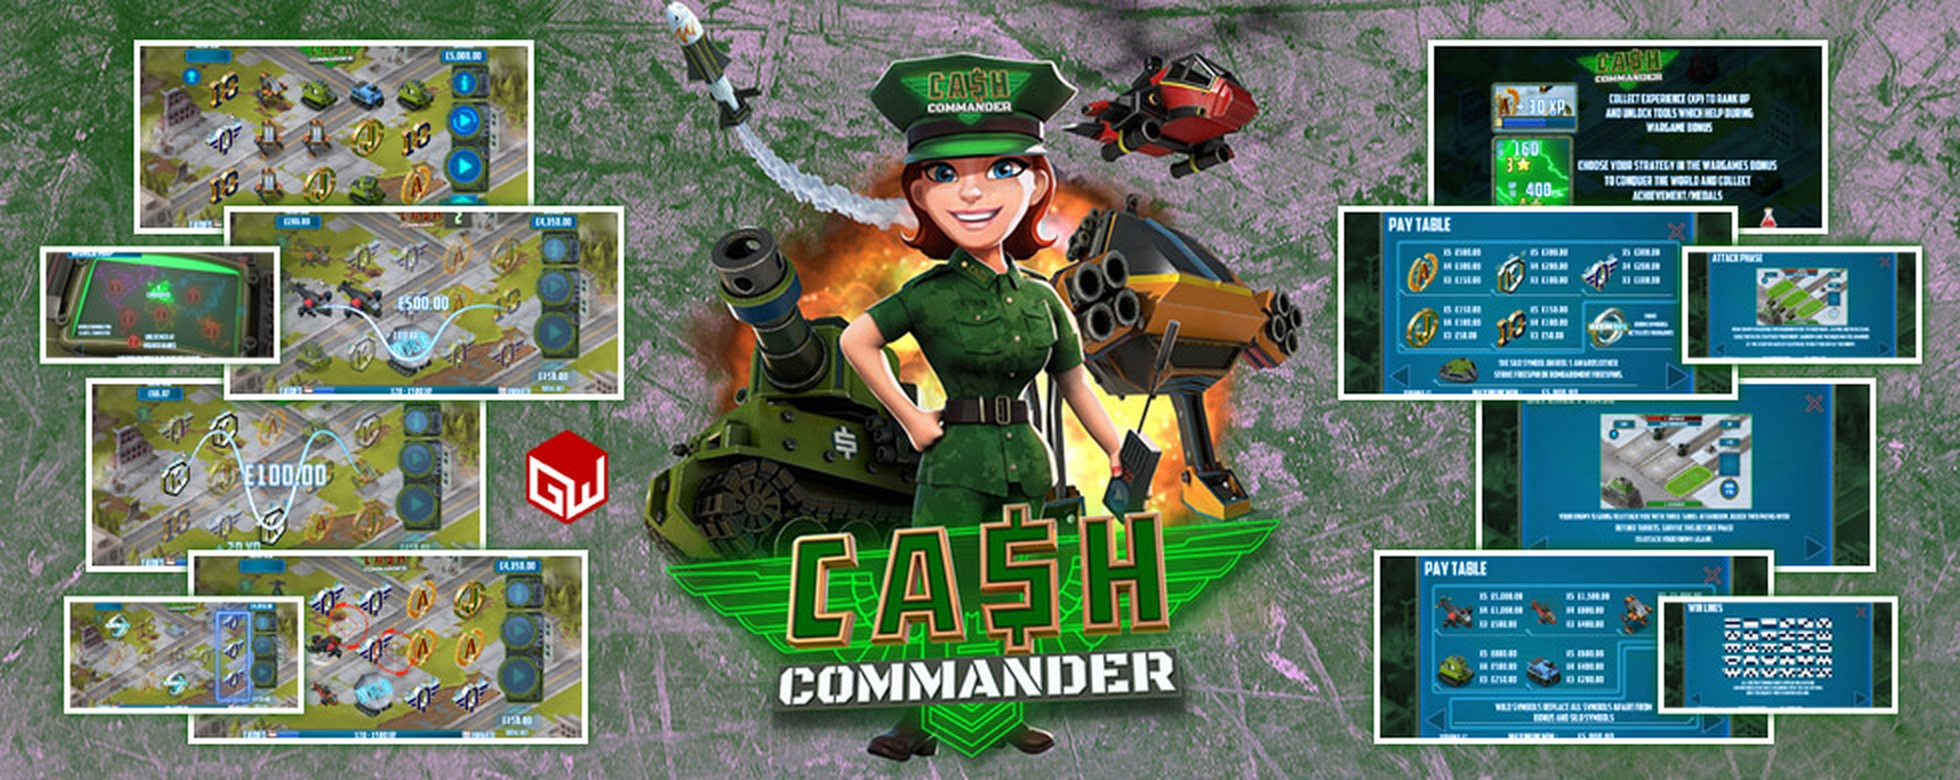 The Cash Commander Online Slot Demo Game by Games Warehouse